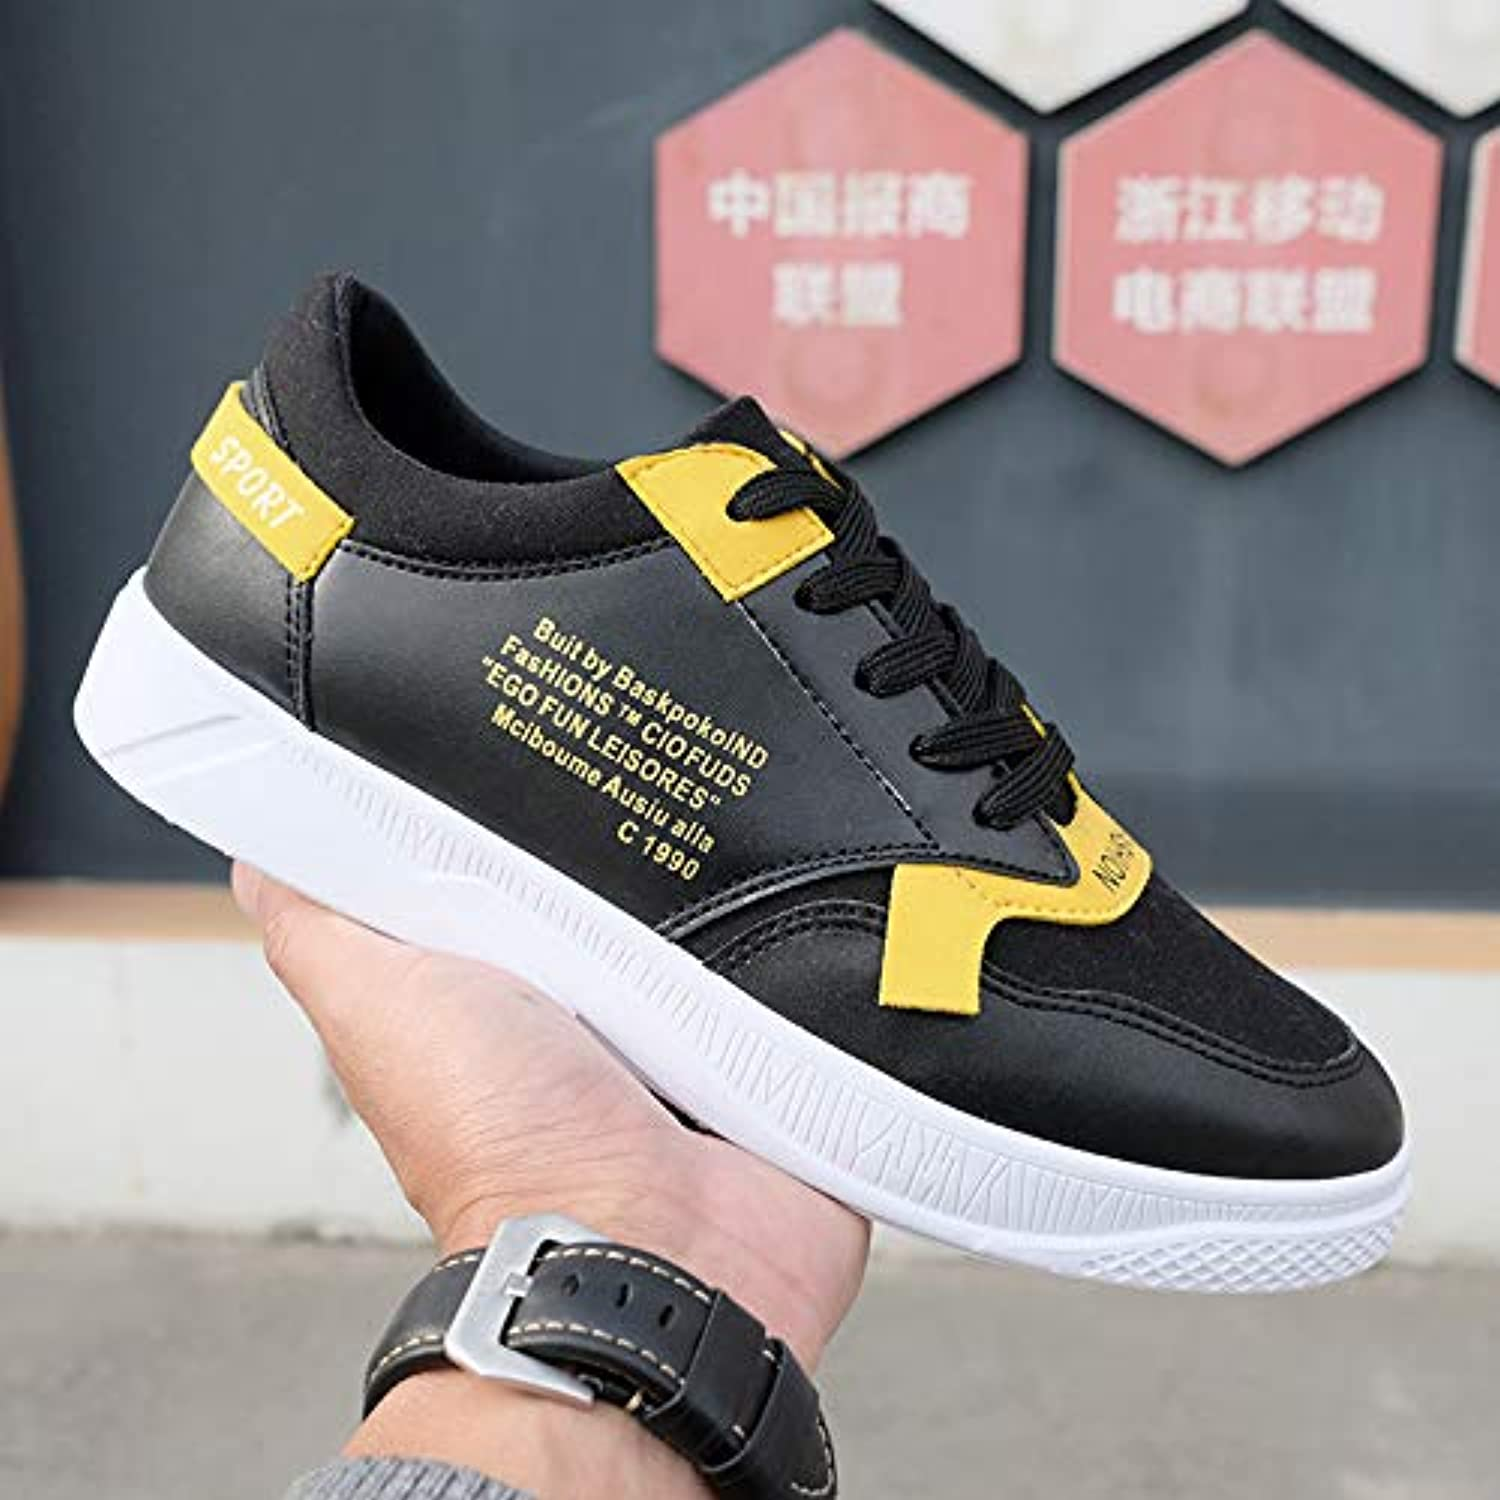 LOVDRAM Men's shoes Spring White shoes, Versatile Wear Student Sports shoes Casual Low To Help Men'S shoes